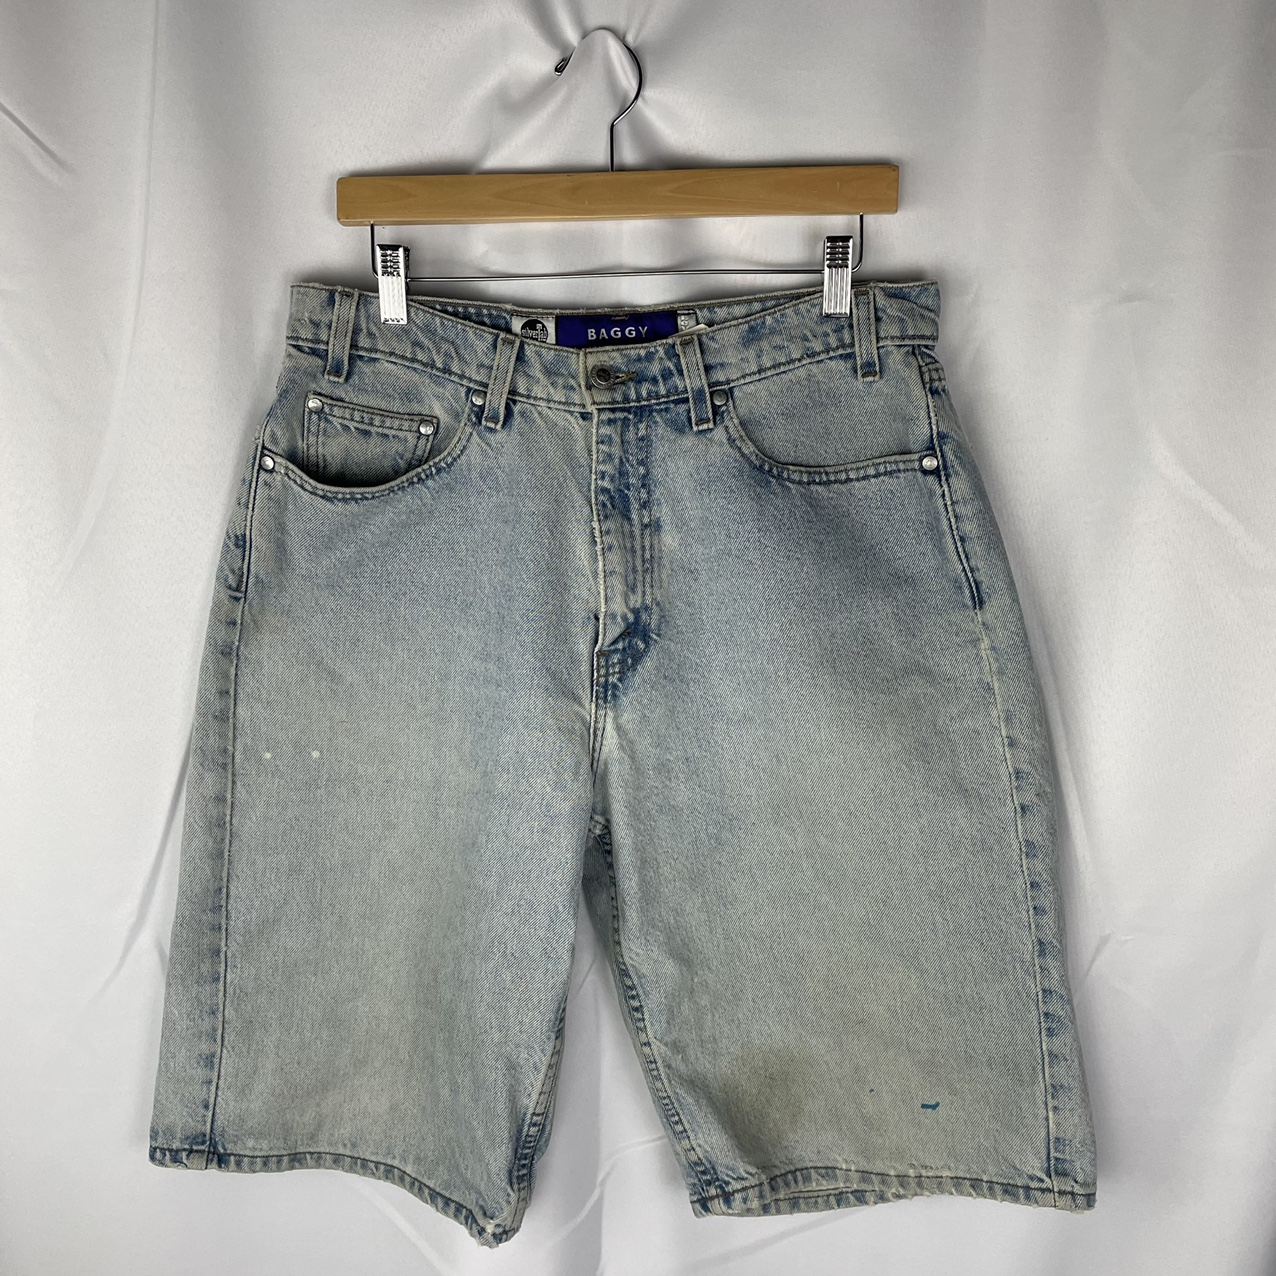 Product Image 1 - Vintage Baggy Silvertab Shorts  Labeled